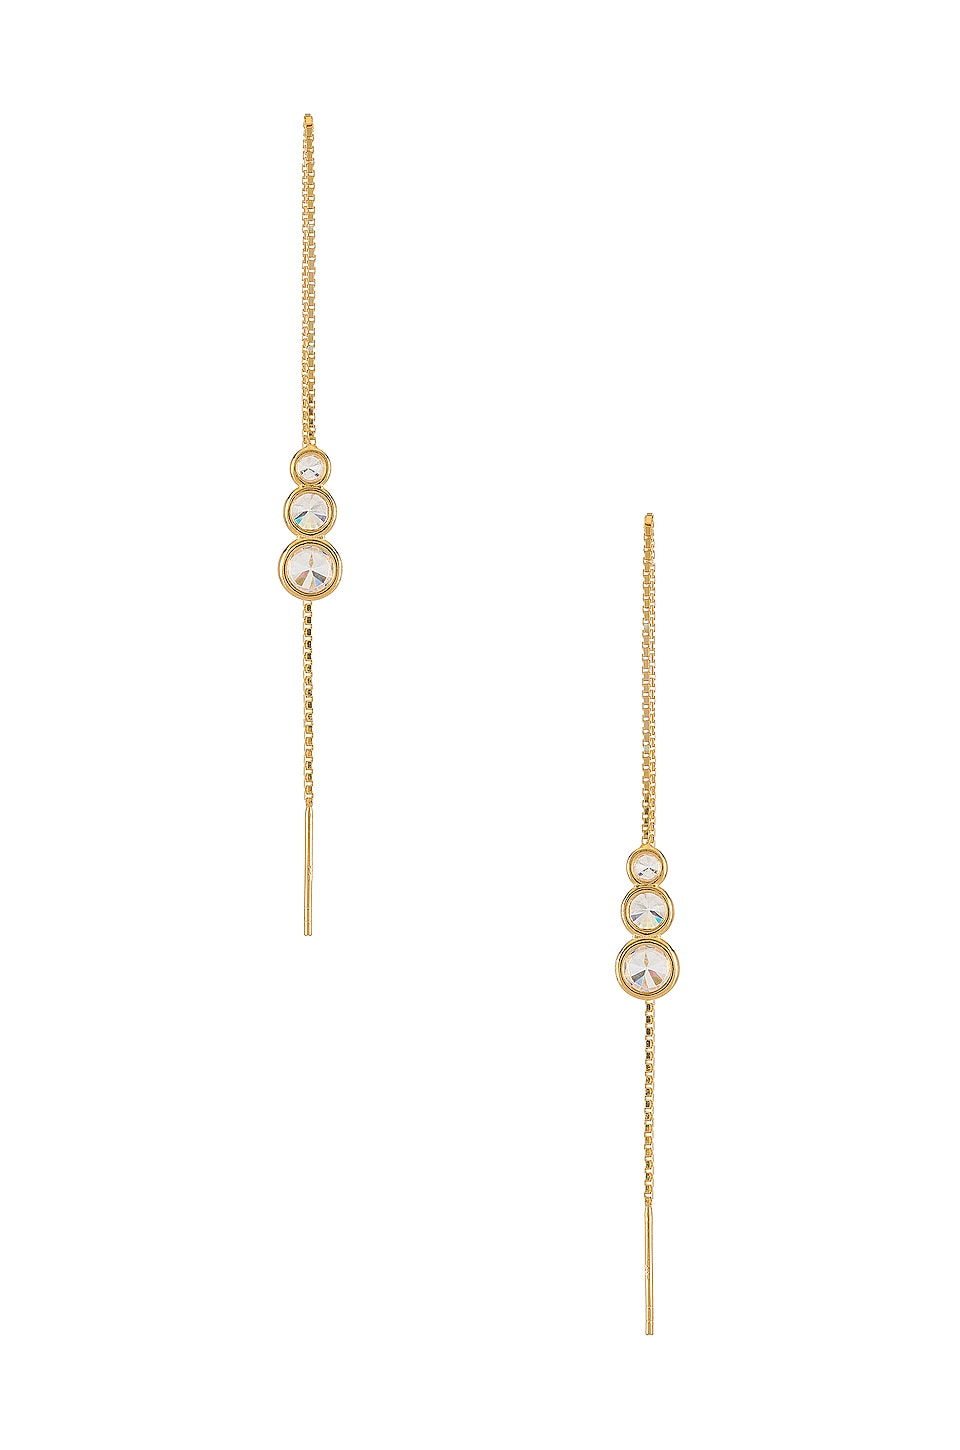 Natalie B Jewelry Anys Triple Drop Threader in Gold